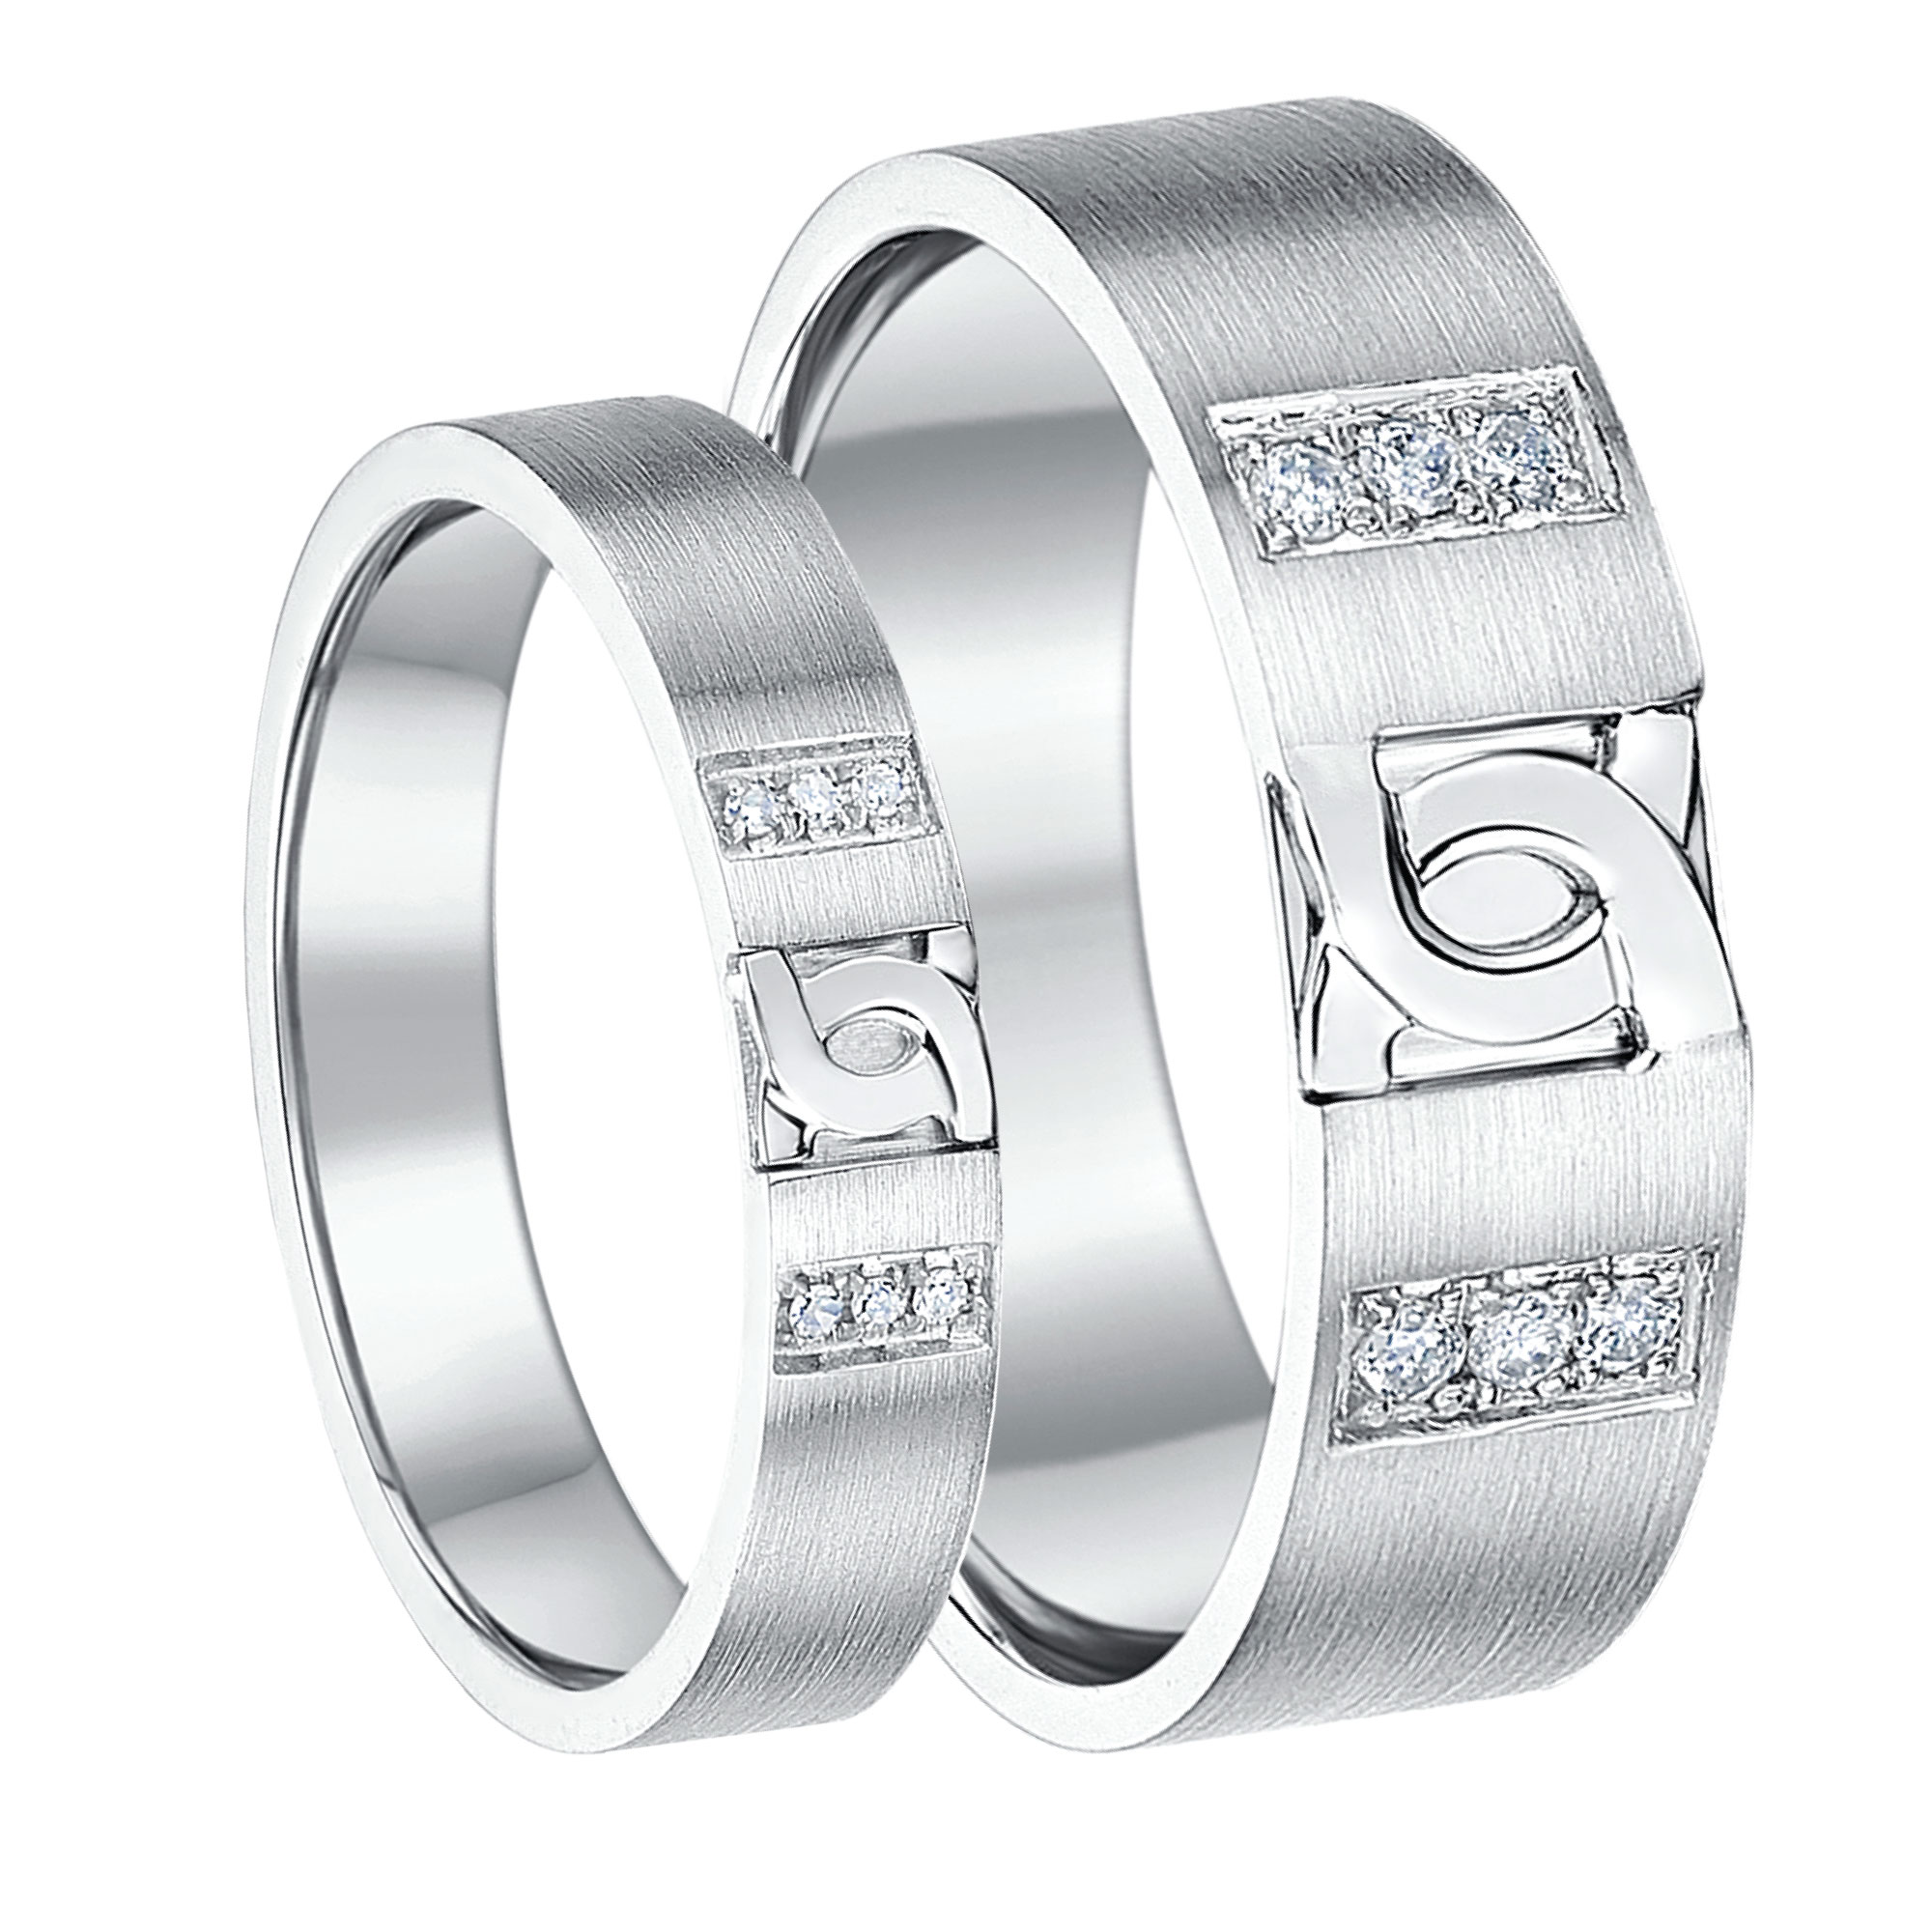 rings shop made platinum round comfort in high patterned half mens fit wedding ring gevery up australia